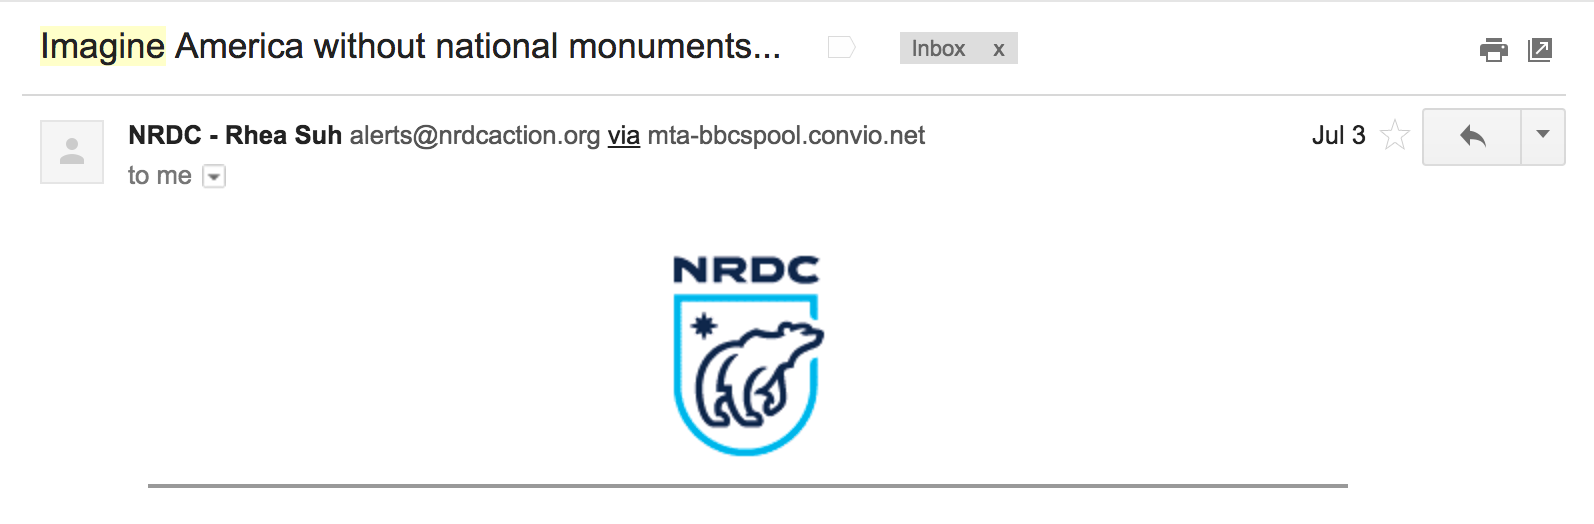 Best Email Subject Lines: Screenshot of email from Natural Resources Defense Council (NRDC)